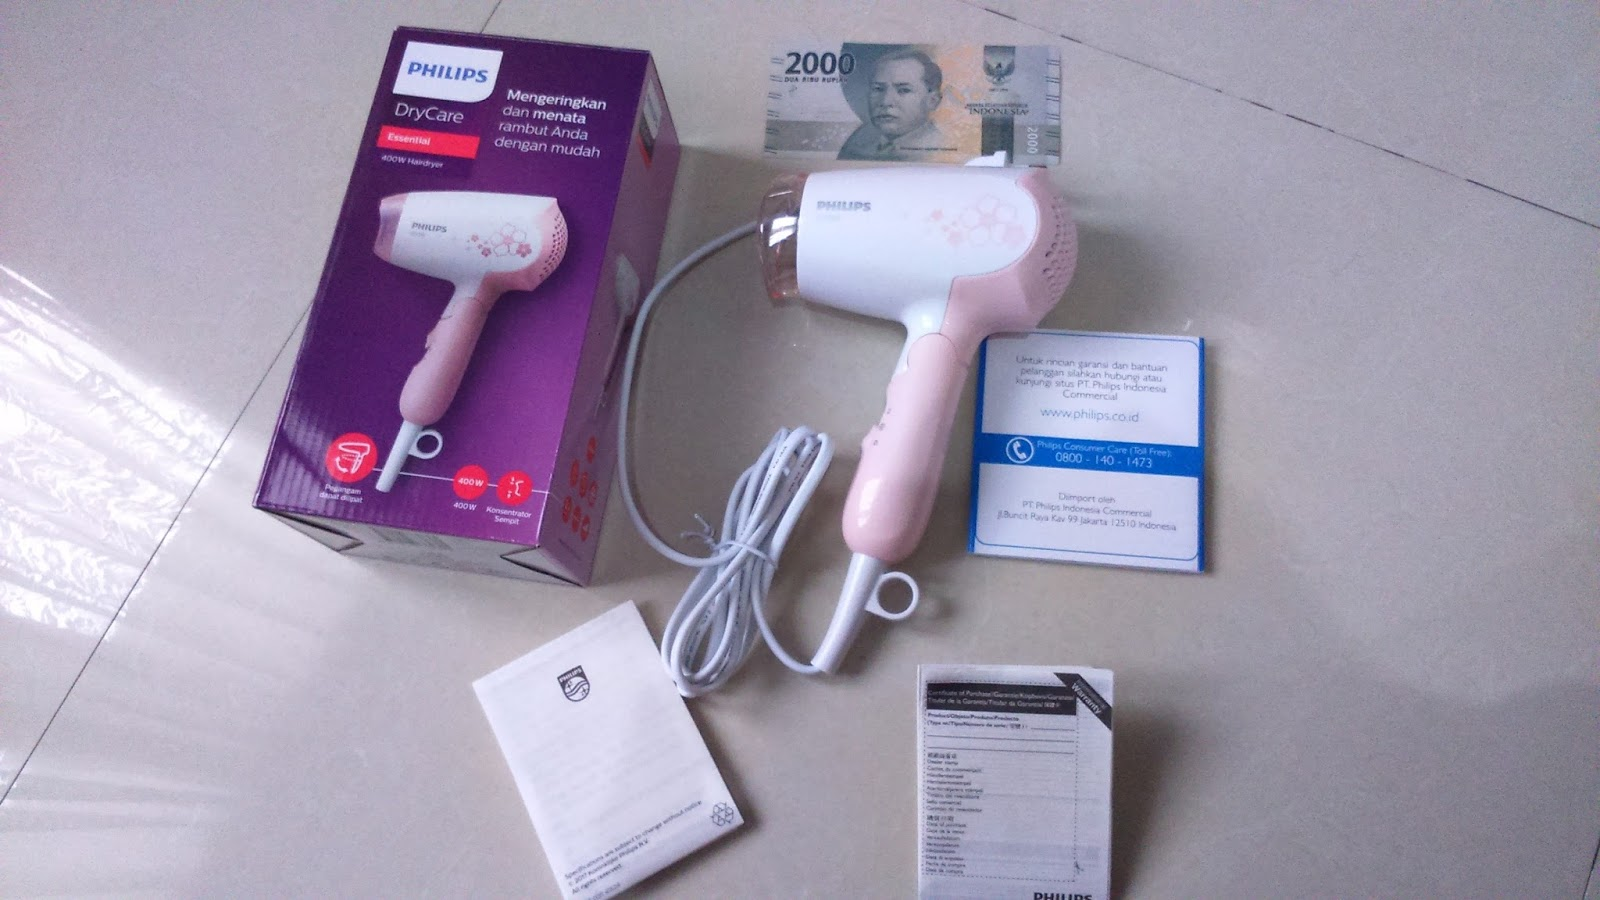 Review   Philips DryCare Essential HP8108 02 400w Hair Dryer - Kata ... 485c5f2c3f